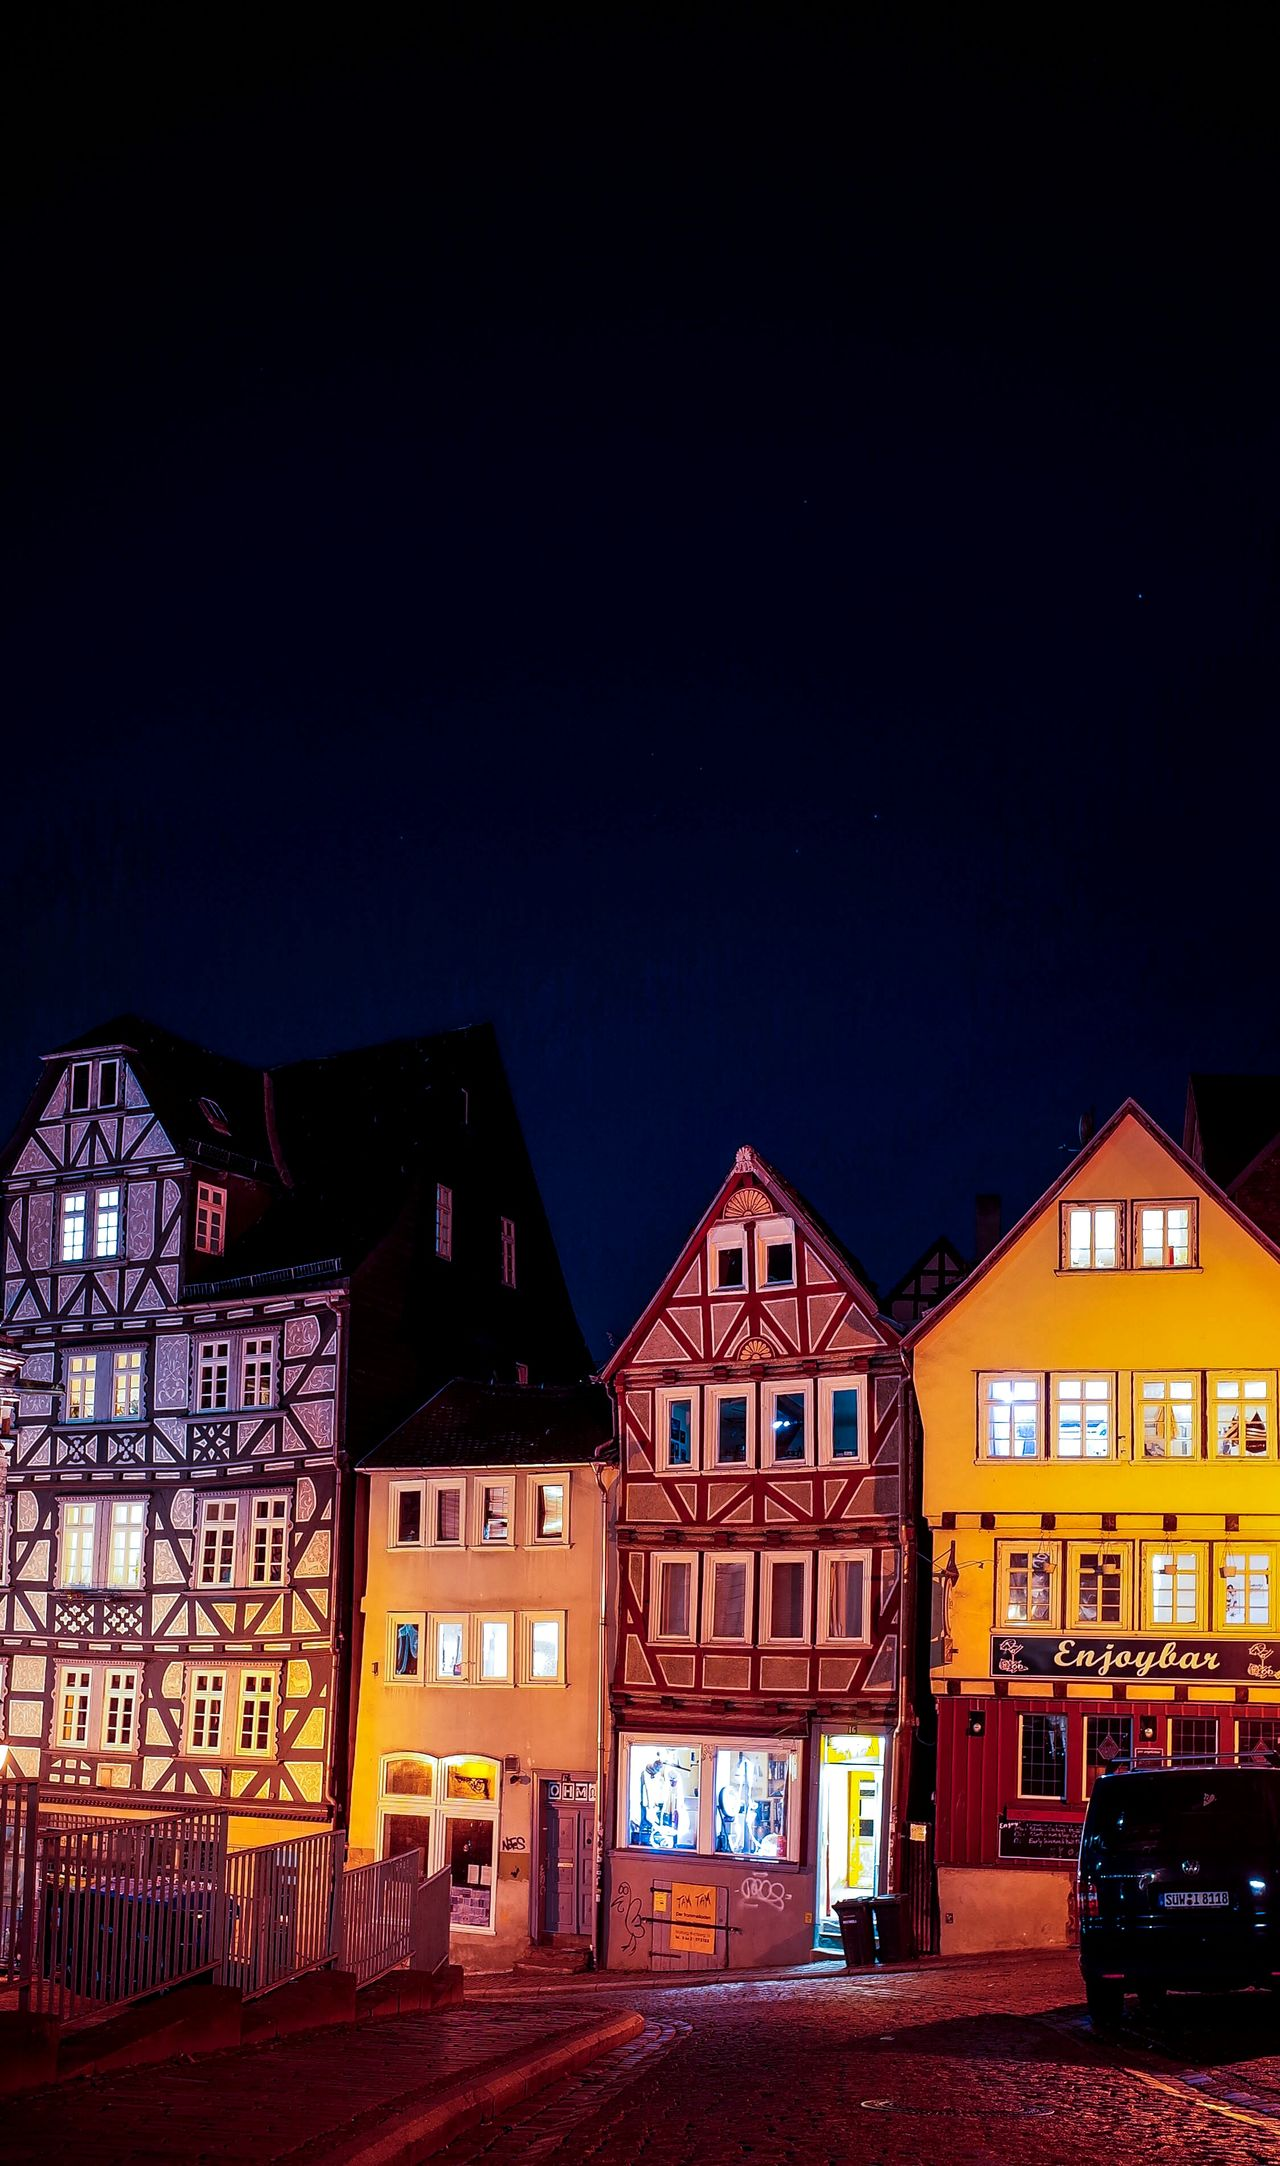 Night City No People Architecture Outdoors Sky Illuminated Marburg An Der Lahn